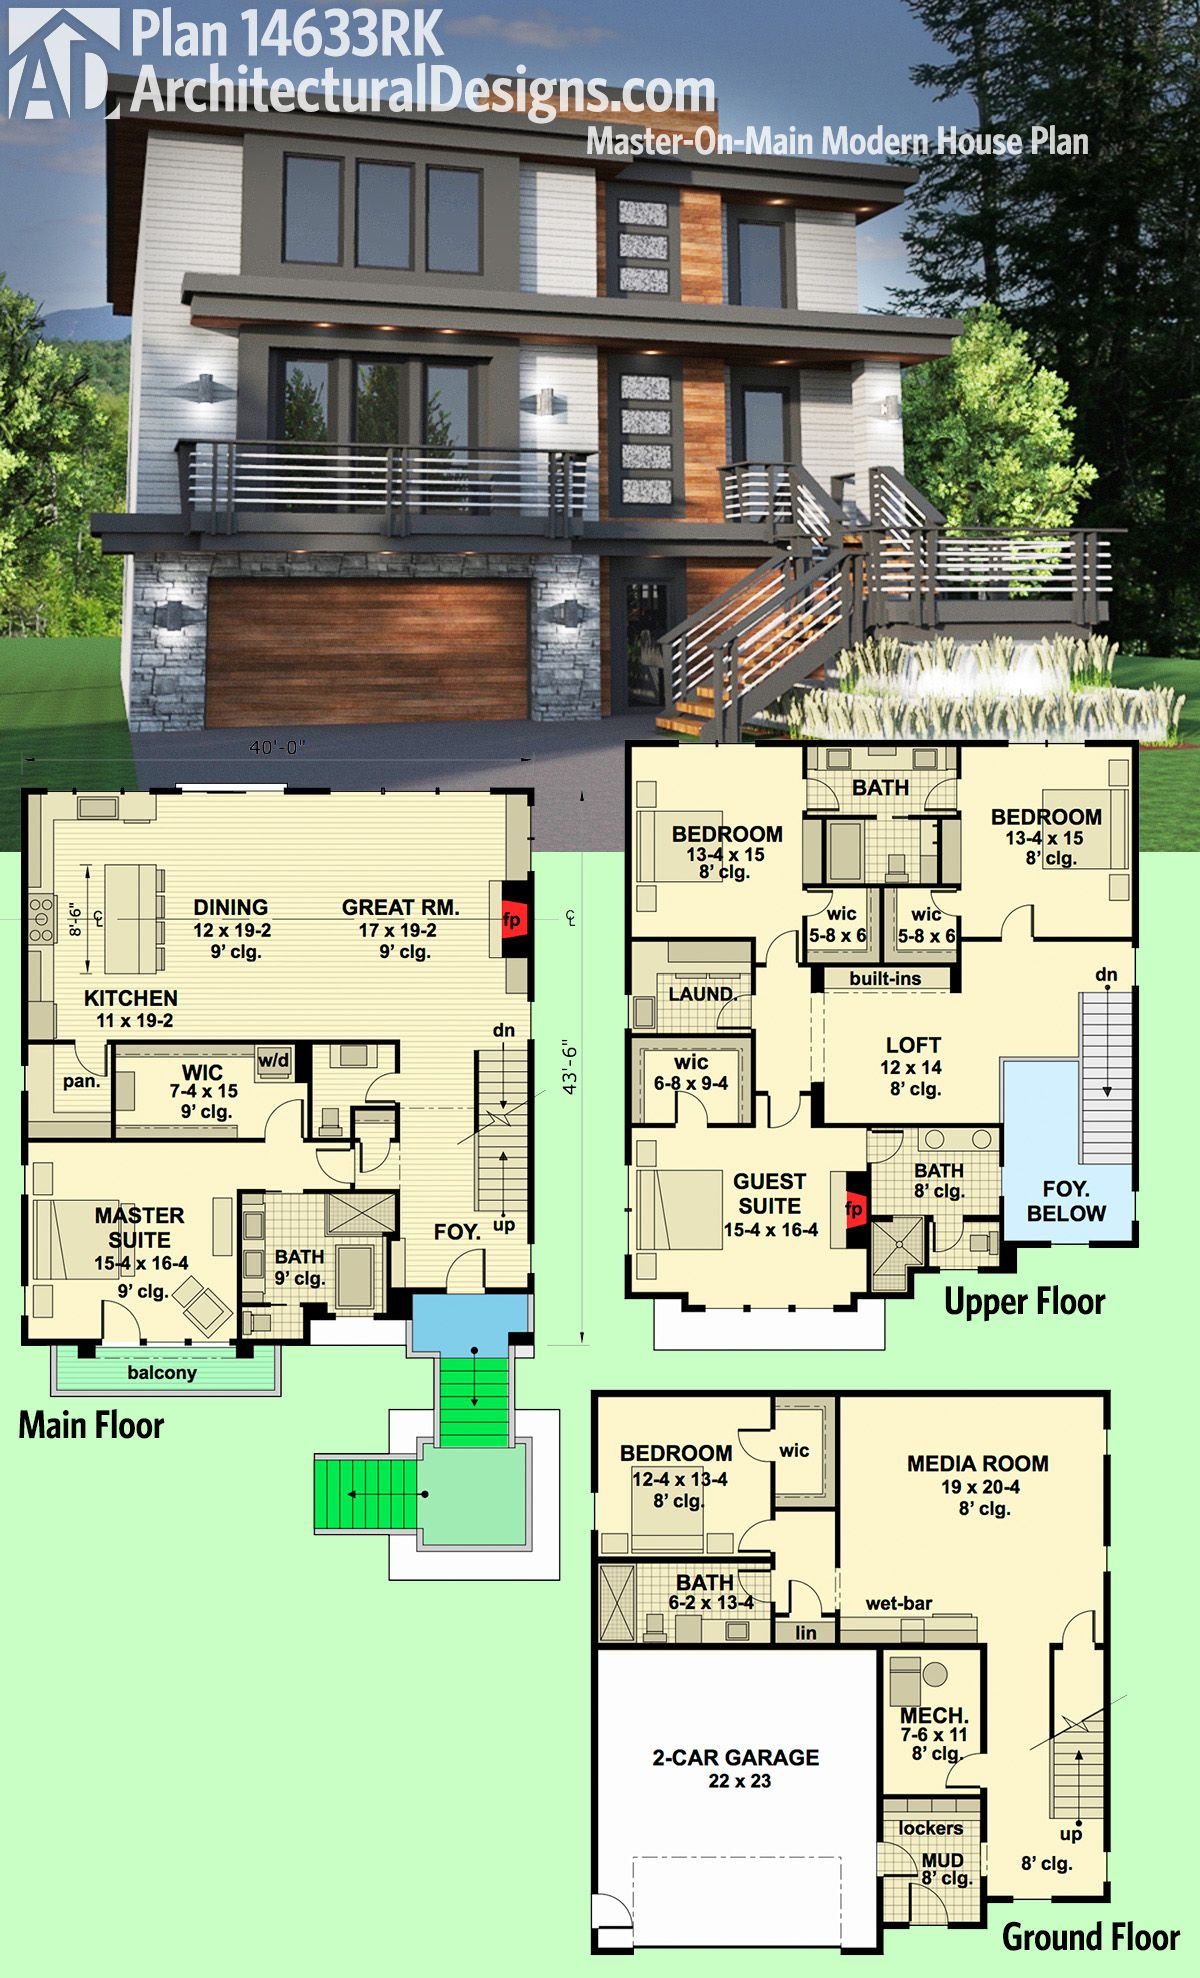 Plan 14633RK Master On Main Modern House Plan